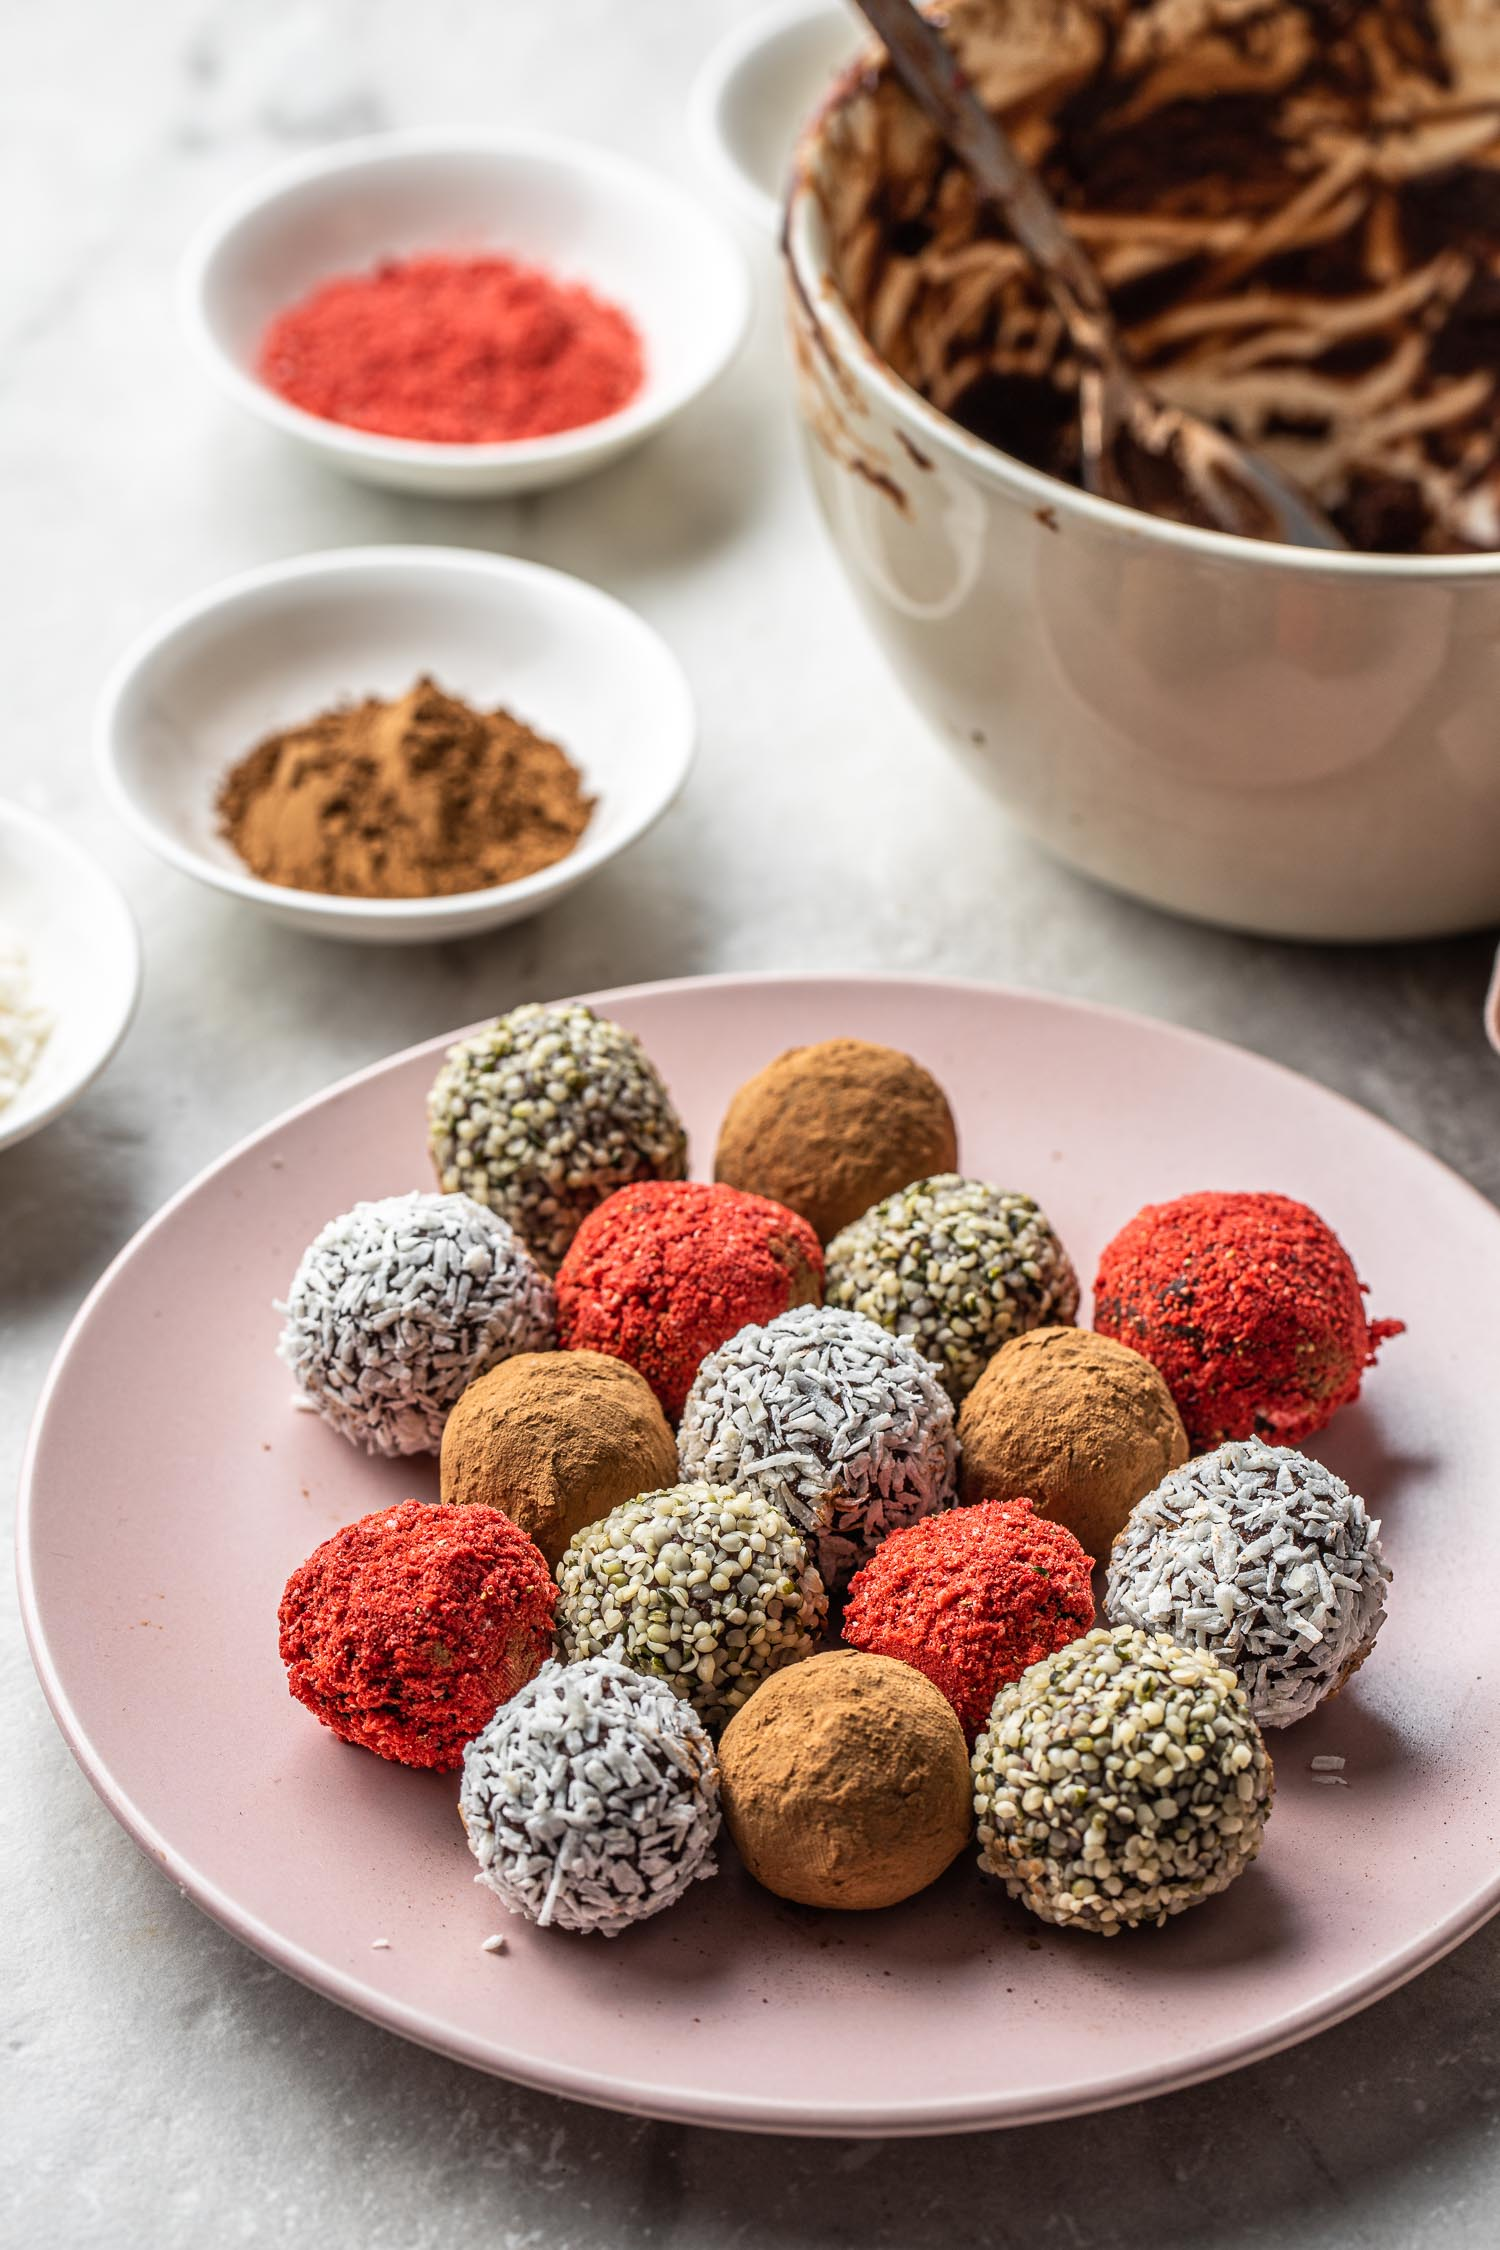 vegan chocolate and avocado truffles candy recipe, truffles coated in red freeze-dried strawberry crumbs, white coconut flakes, brown cocoa or cacao powder, and earthy colored hemp seeds on a pale pink dessert plate with a small bowl of brown cacao powder, red crushed freeze dried strawberries, and an empty used mixing bowl with dark chocolate on the sides